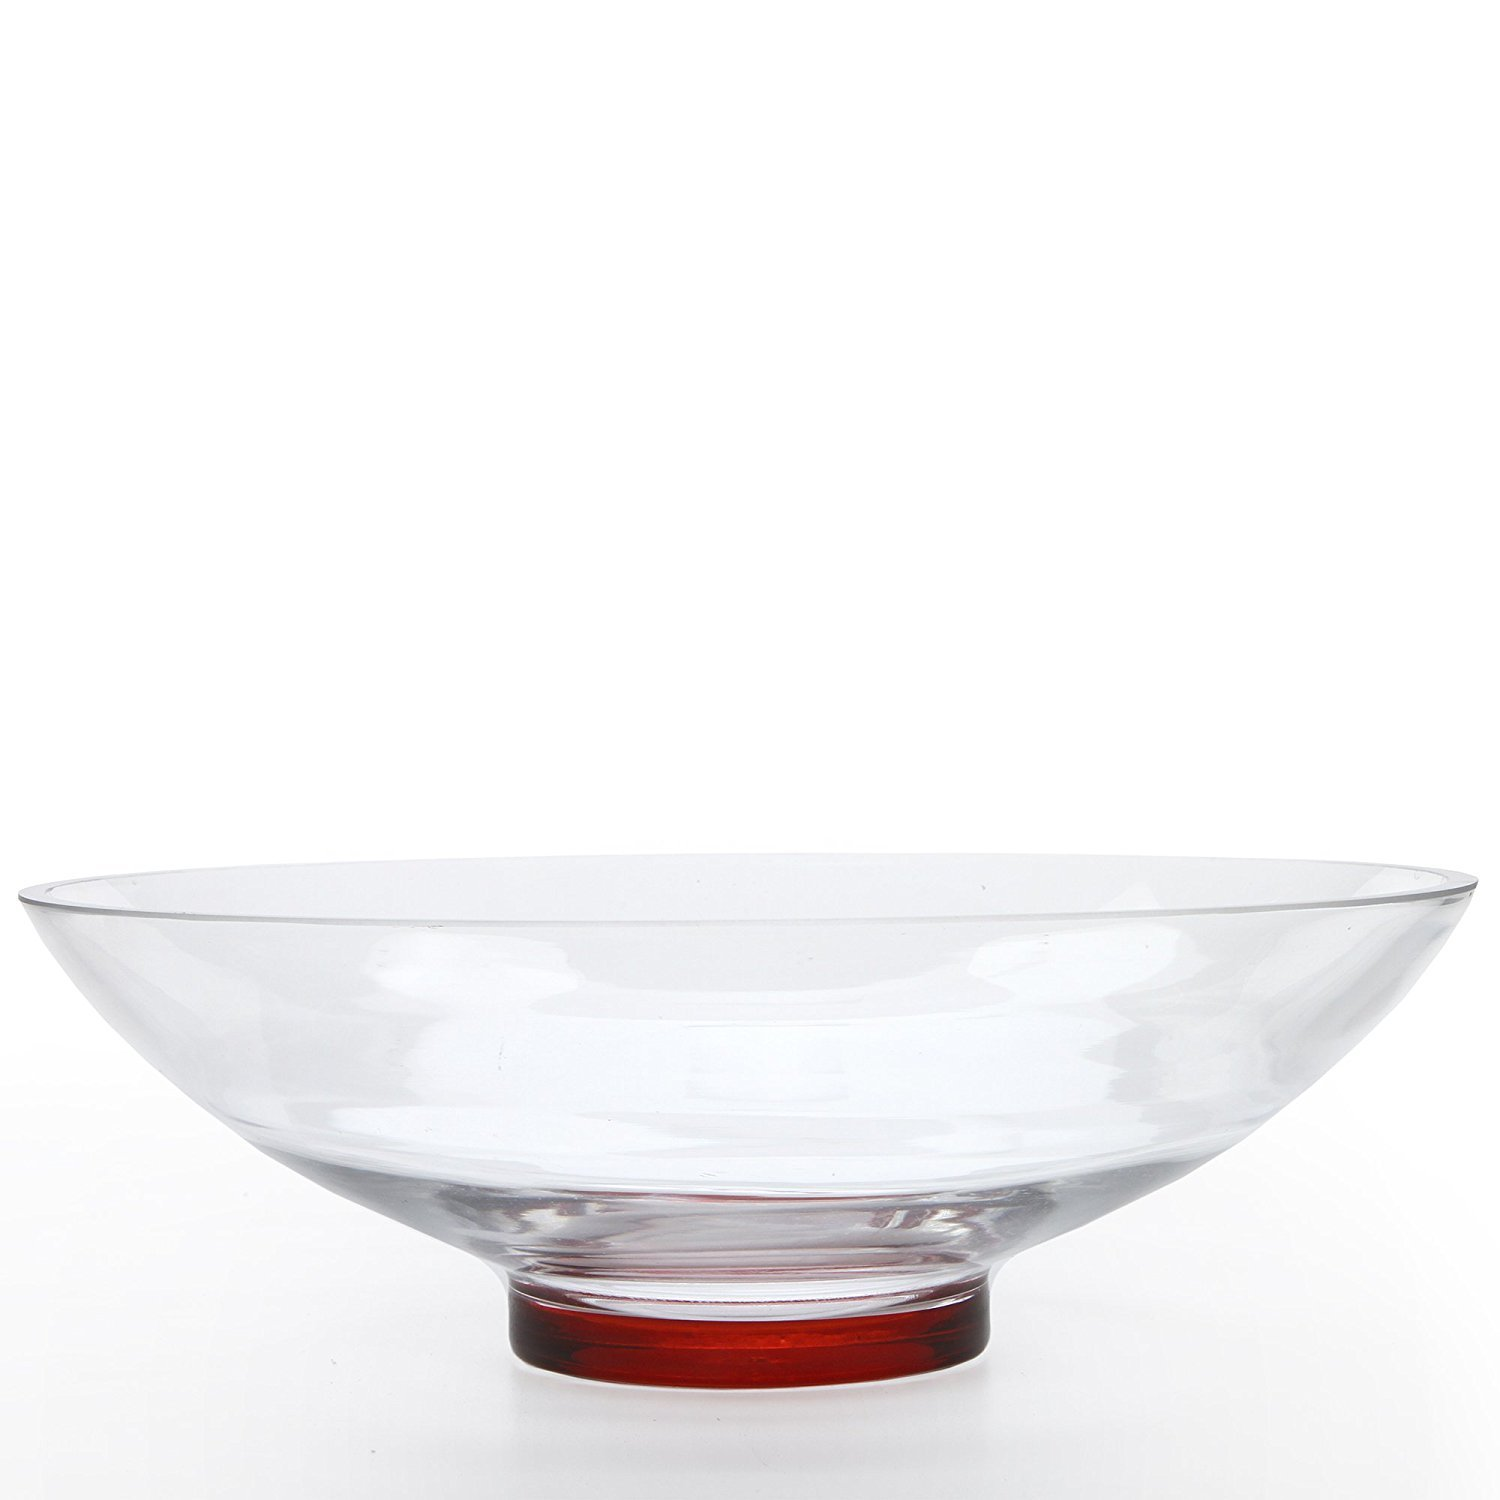 "Hosley's Clear Glass Bowl with Red Bottom, 11.8"" Diameter: Ideal for Decorative Balls/ Orbs, DIY Projects, Terrariums and More. HG Global FBA-G14548ON-1-EA"